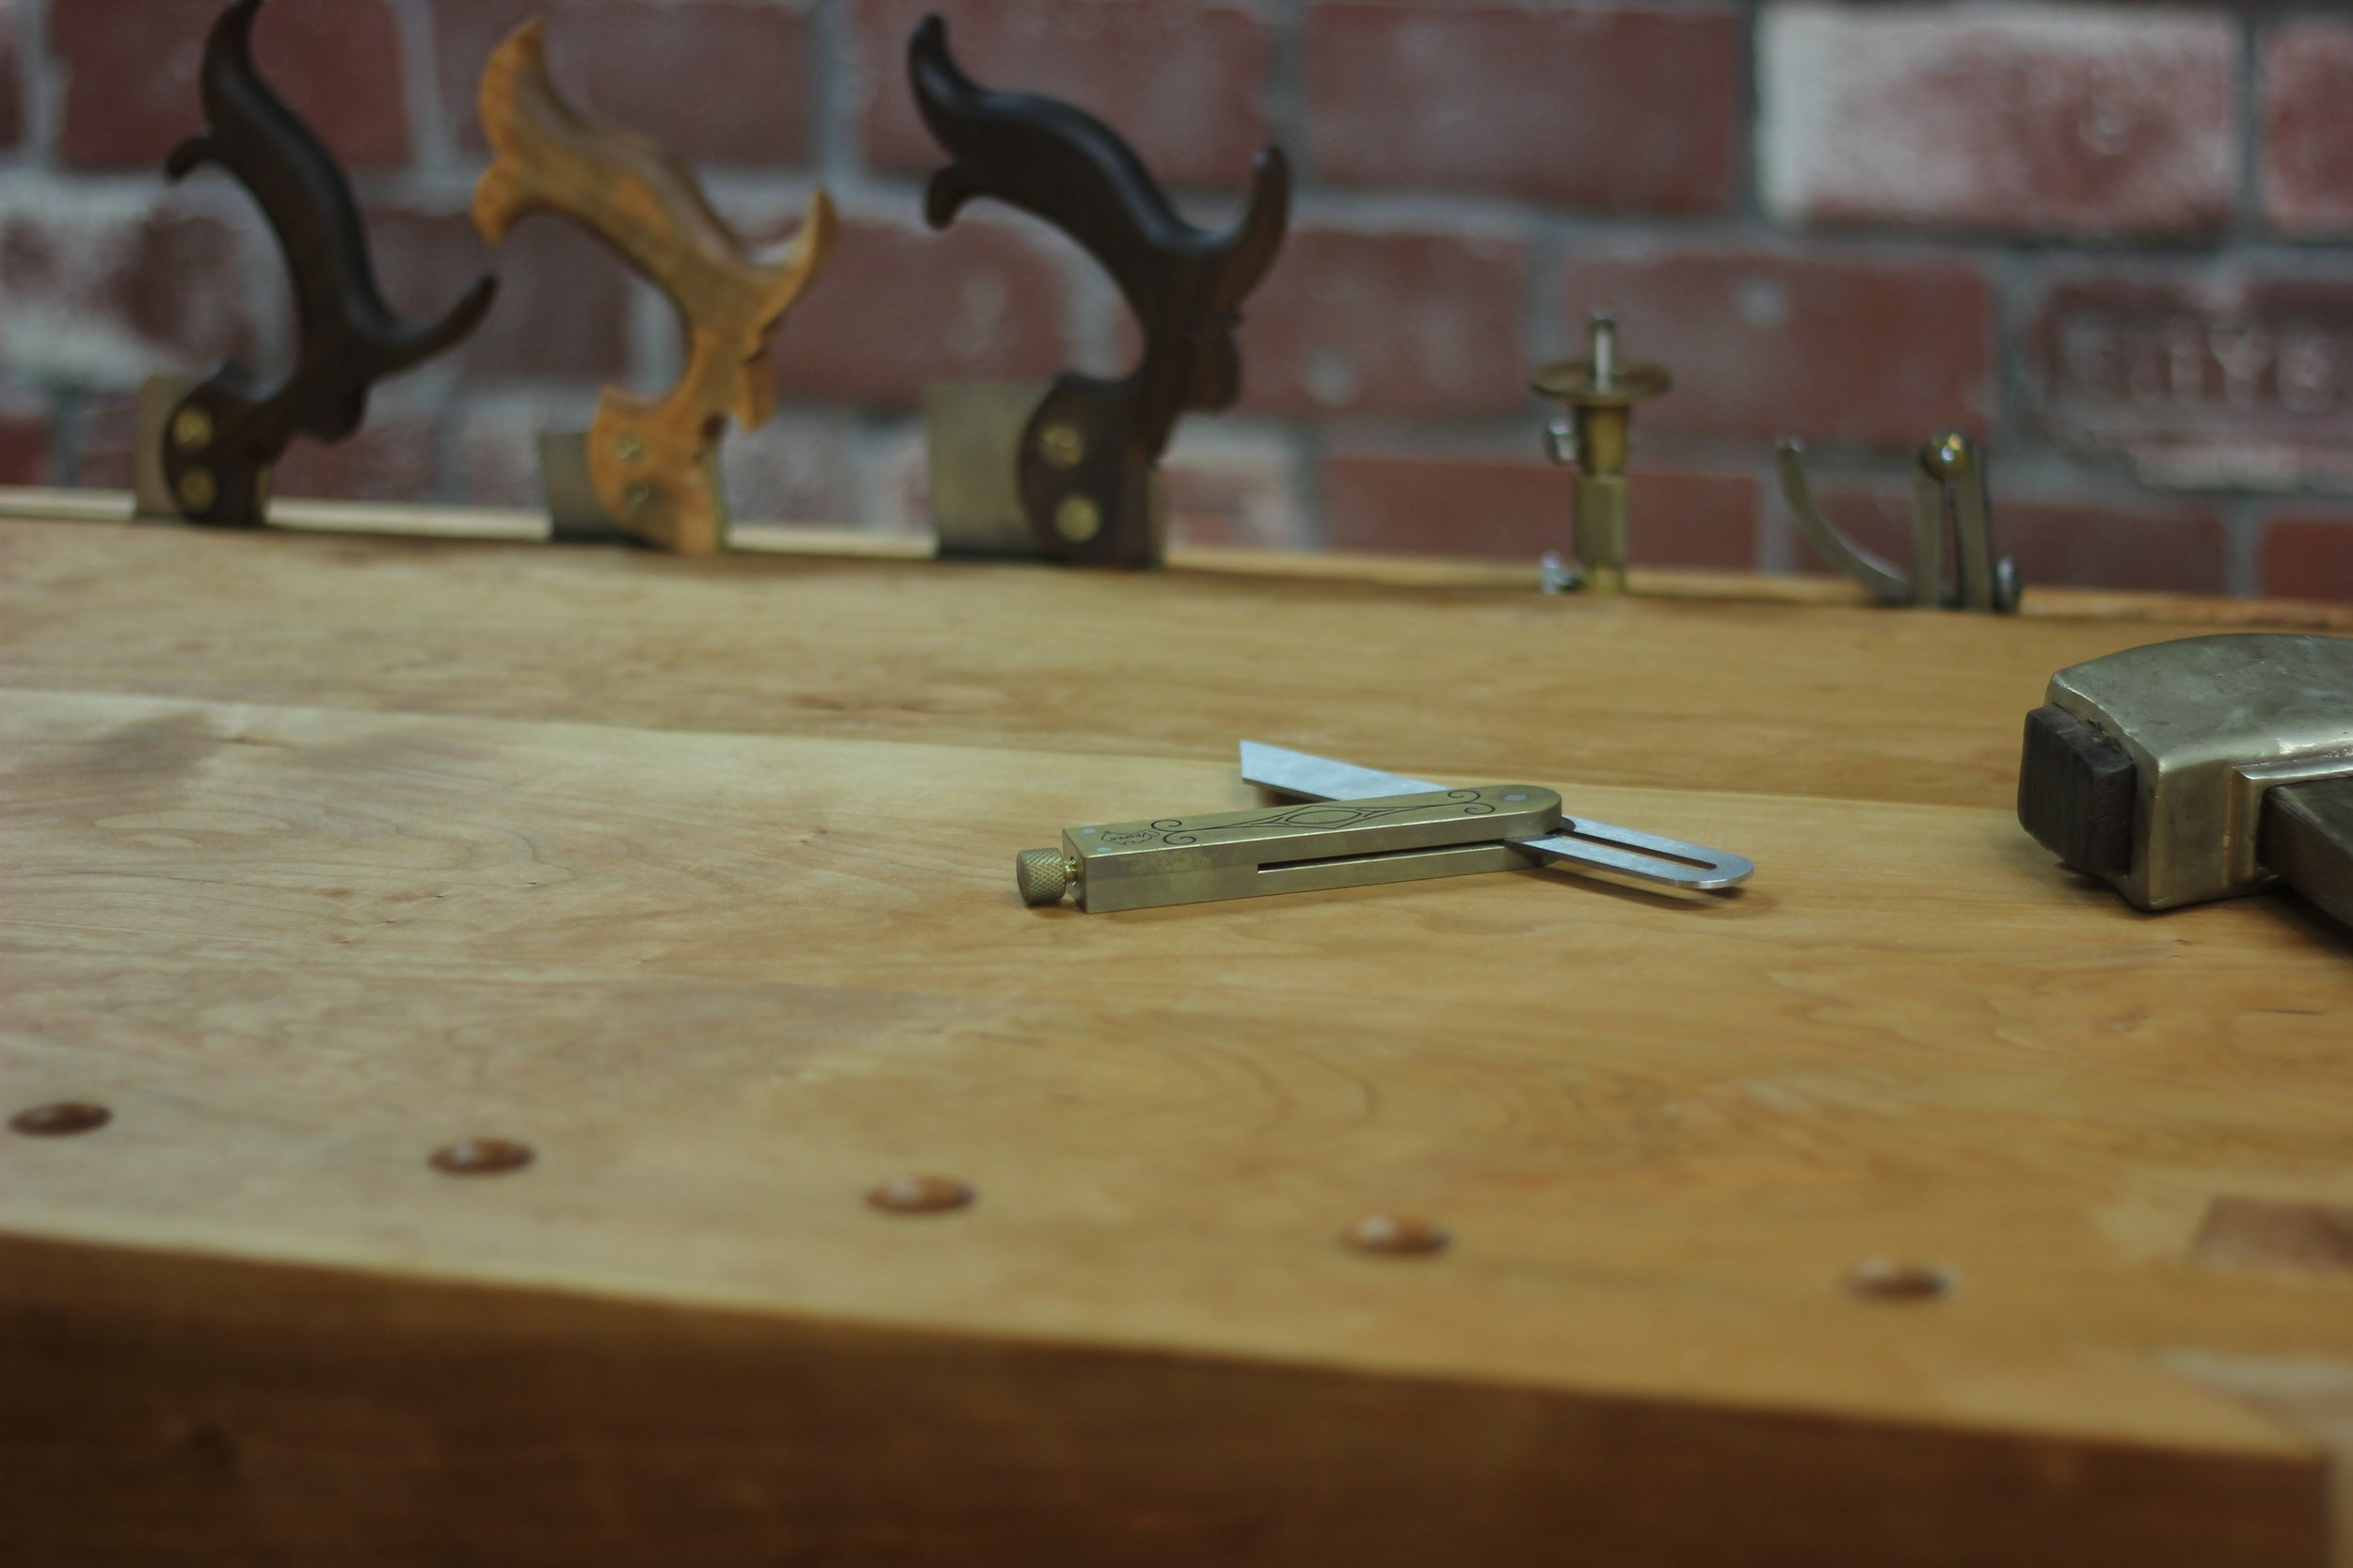 At the bench…